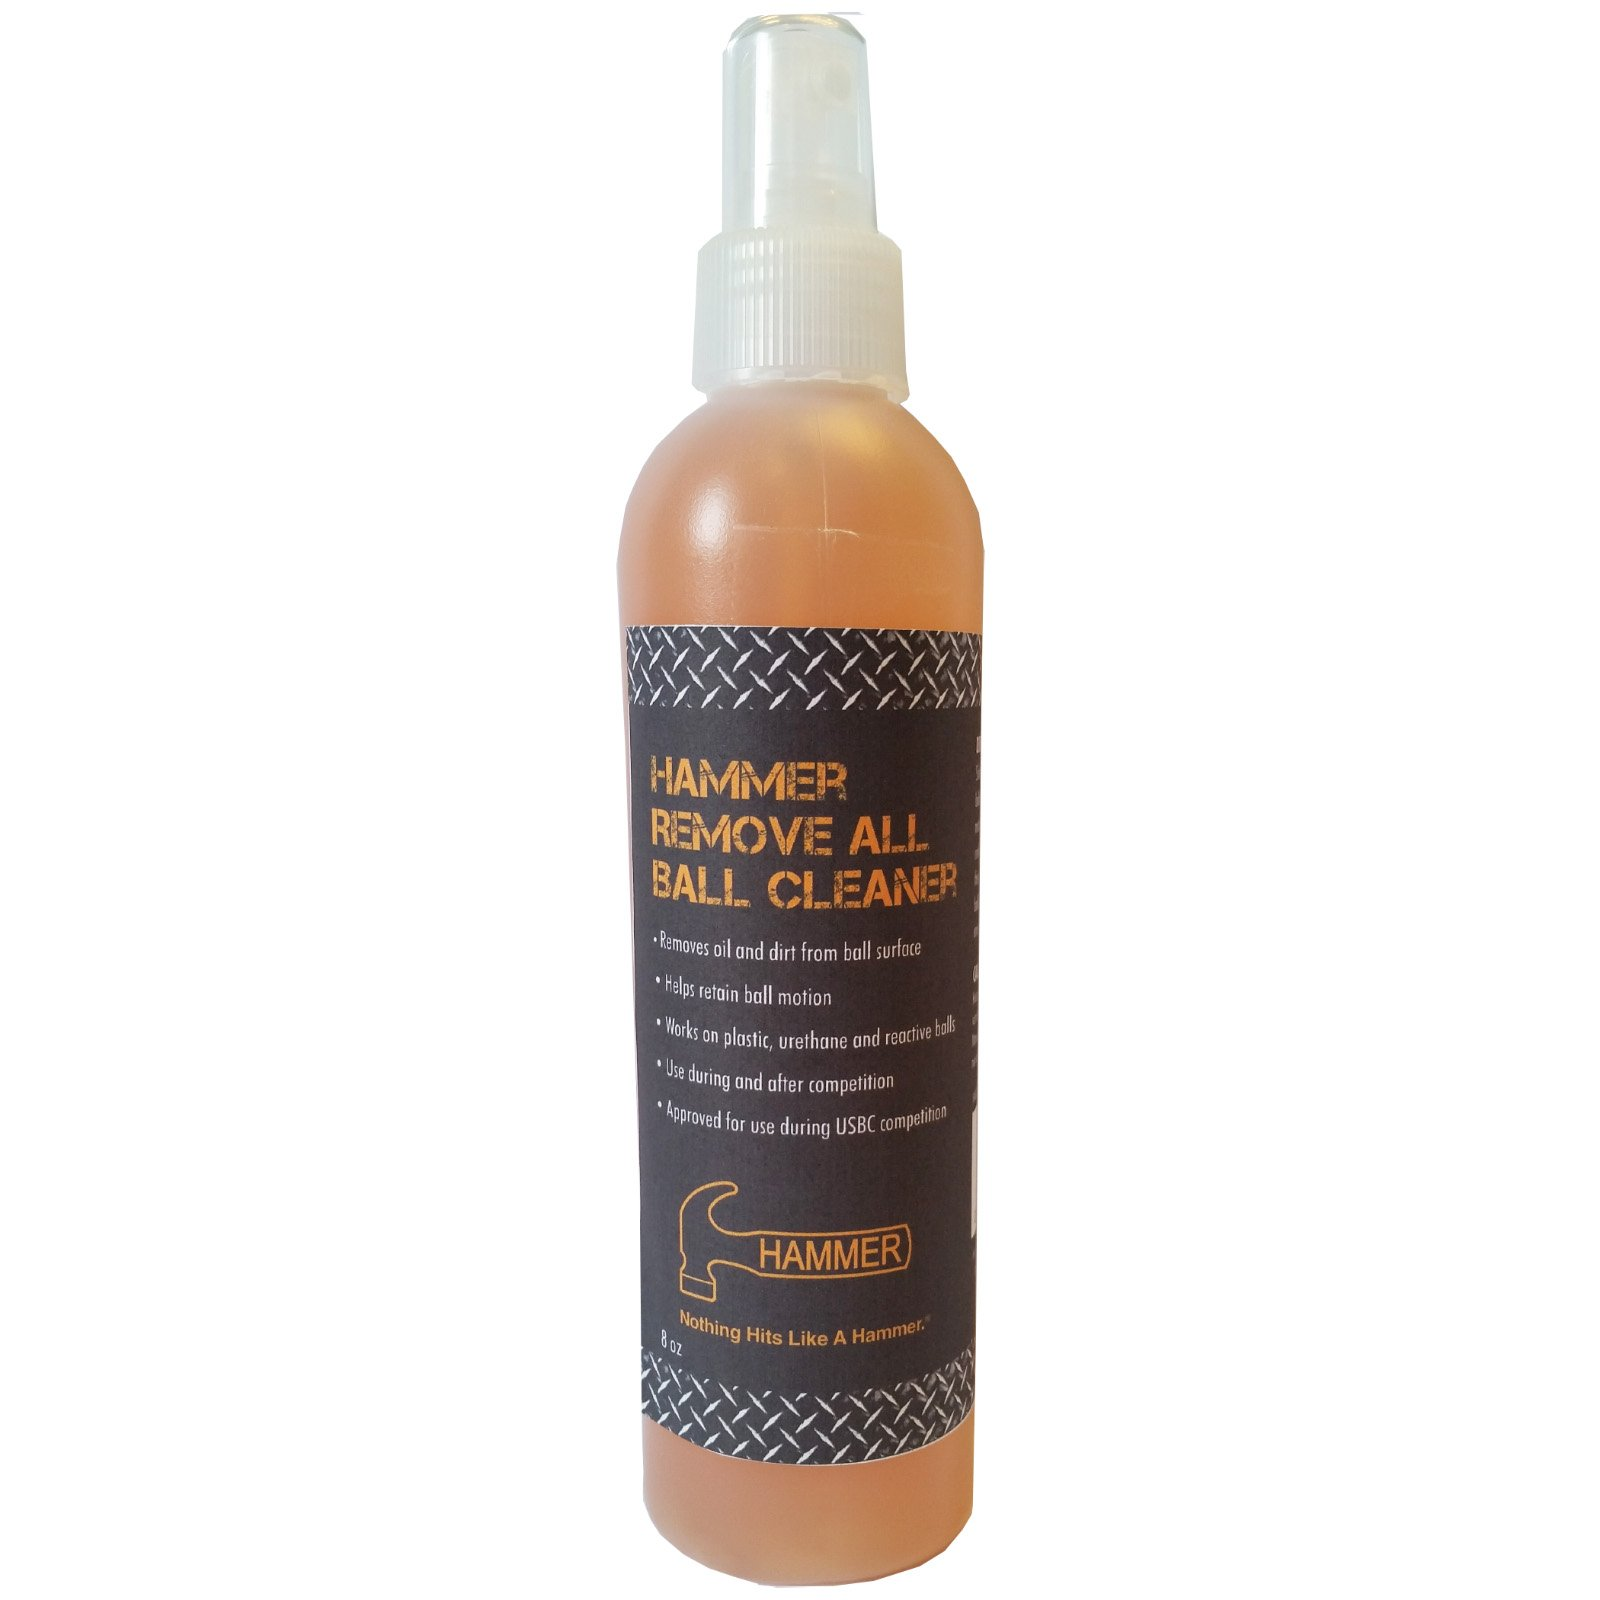 Hammer Remove All Ball Cleaner 32oz